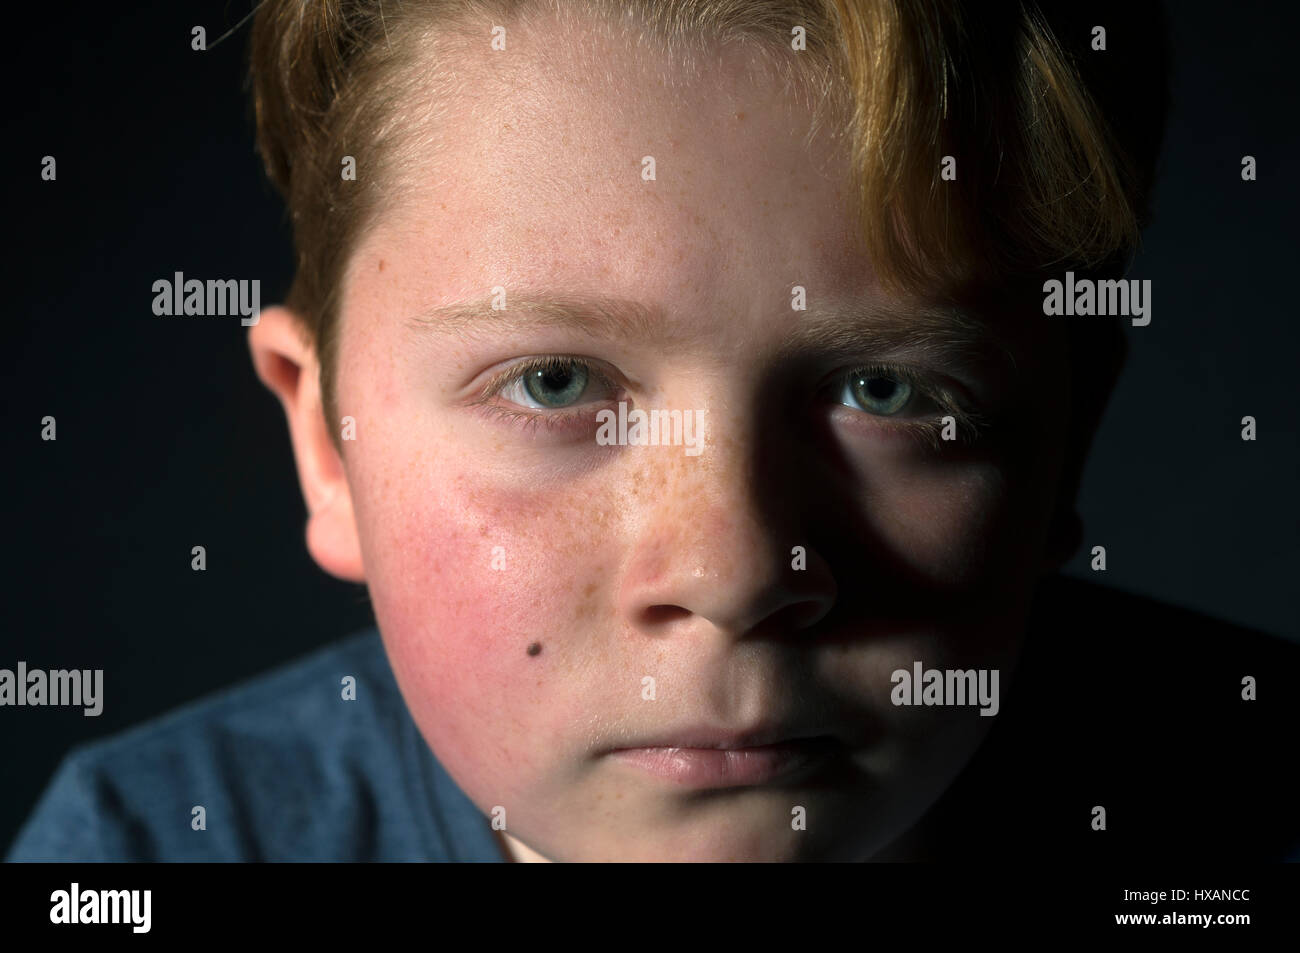 Ginger haired boy - Stock Image